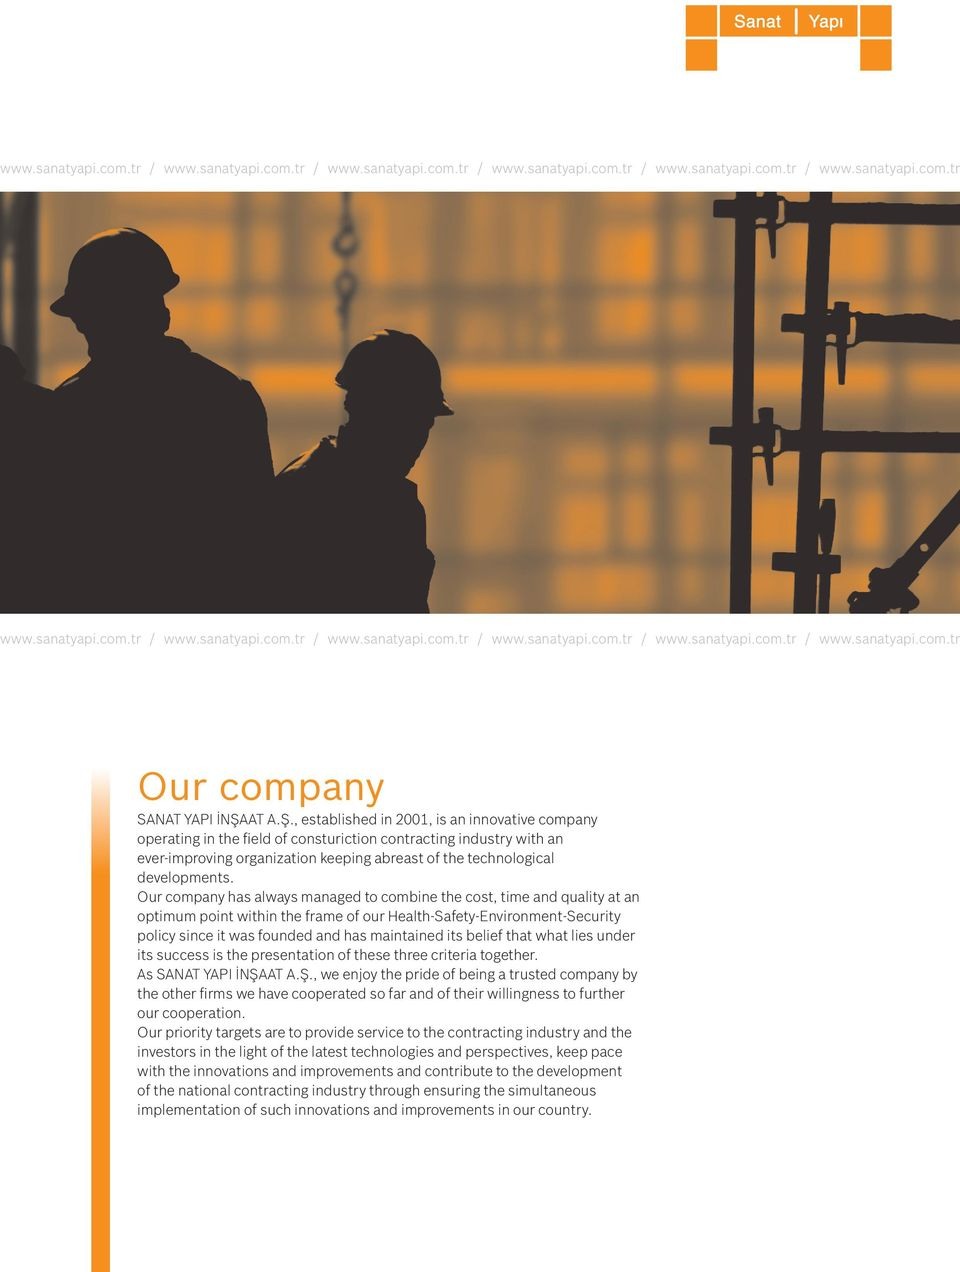 , established in 2001, is an innovative company operating in the field of consturiction contracting industry with an ever-improving organization keeping abreast of the technological developments.